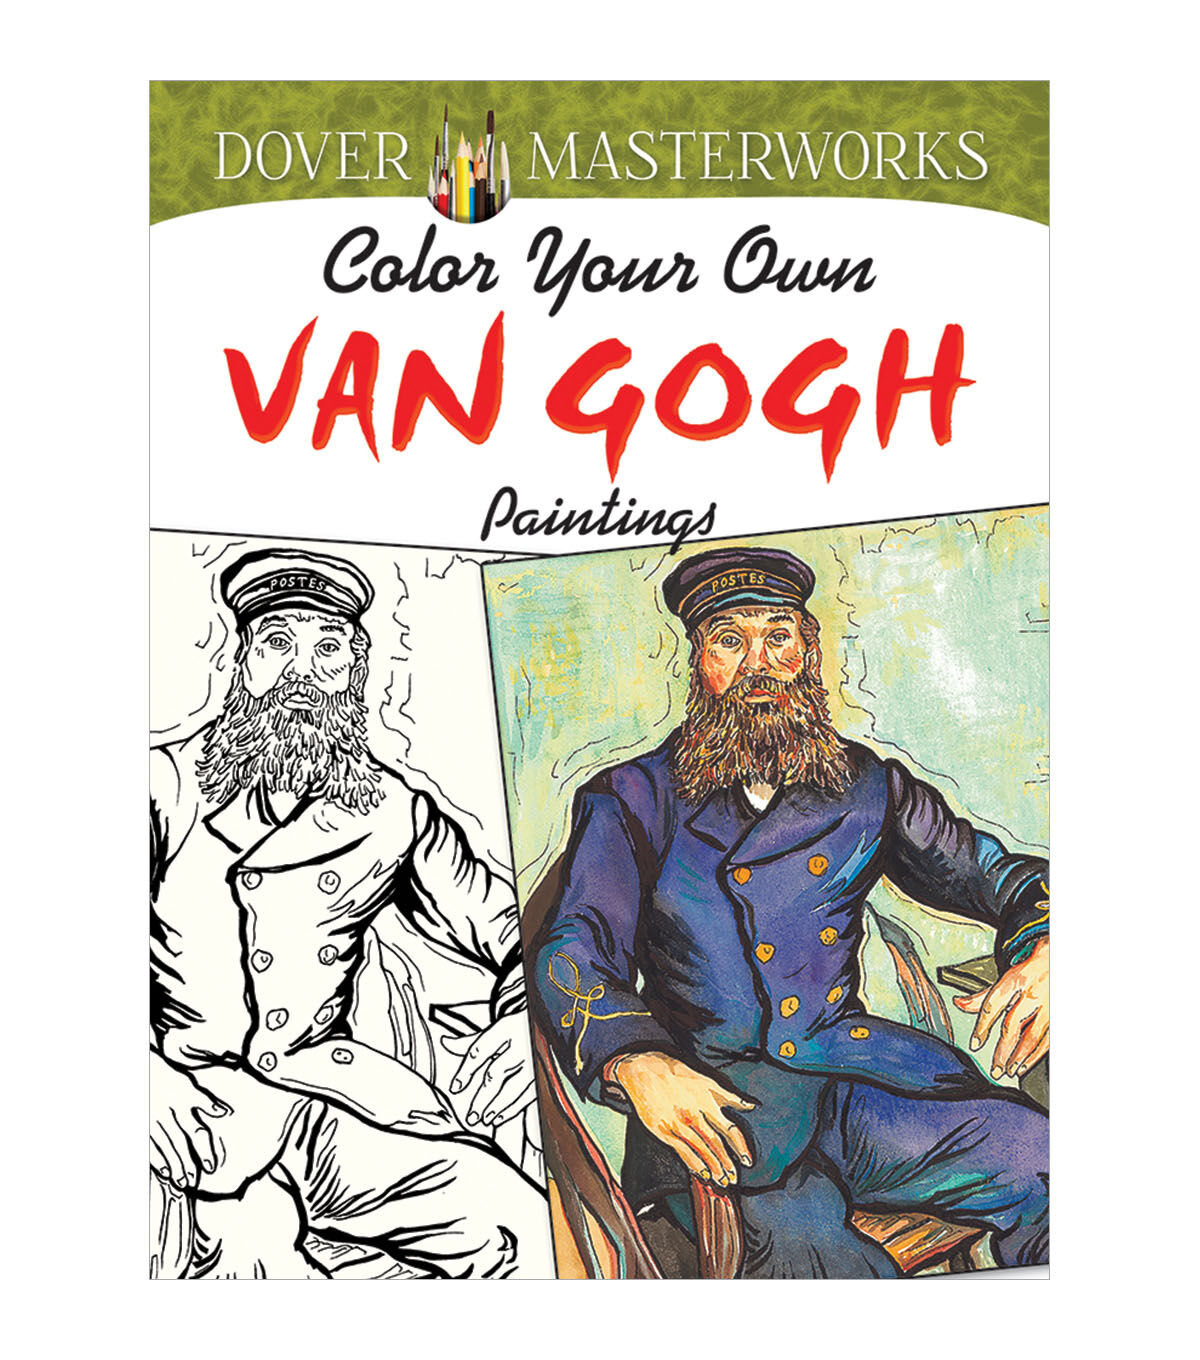 - Dover Masterworks Color Your Own Van Gogh Paintings Coloring Book